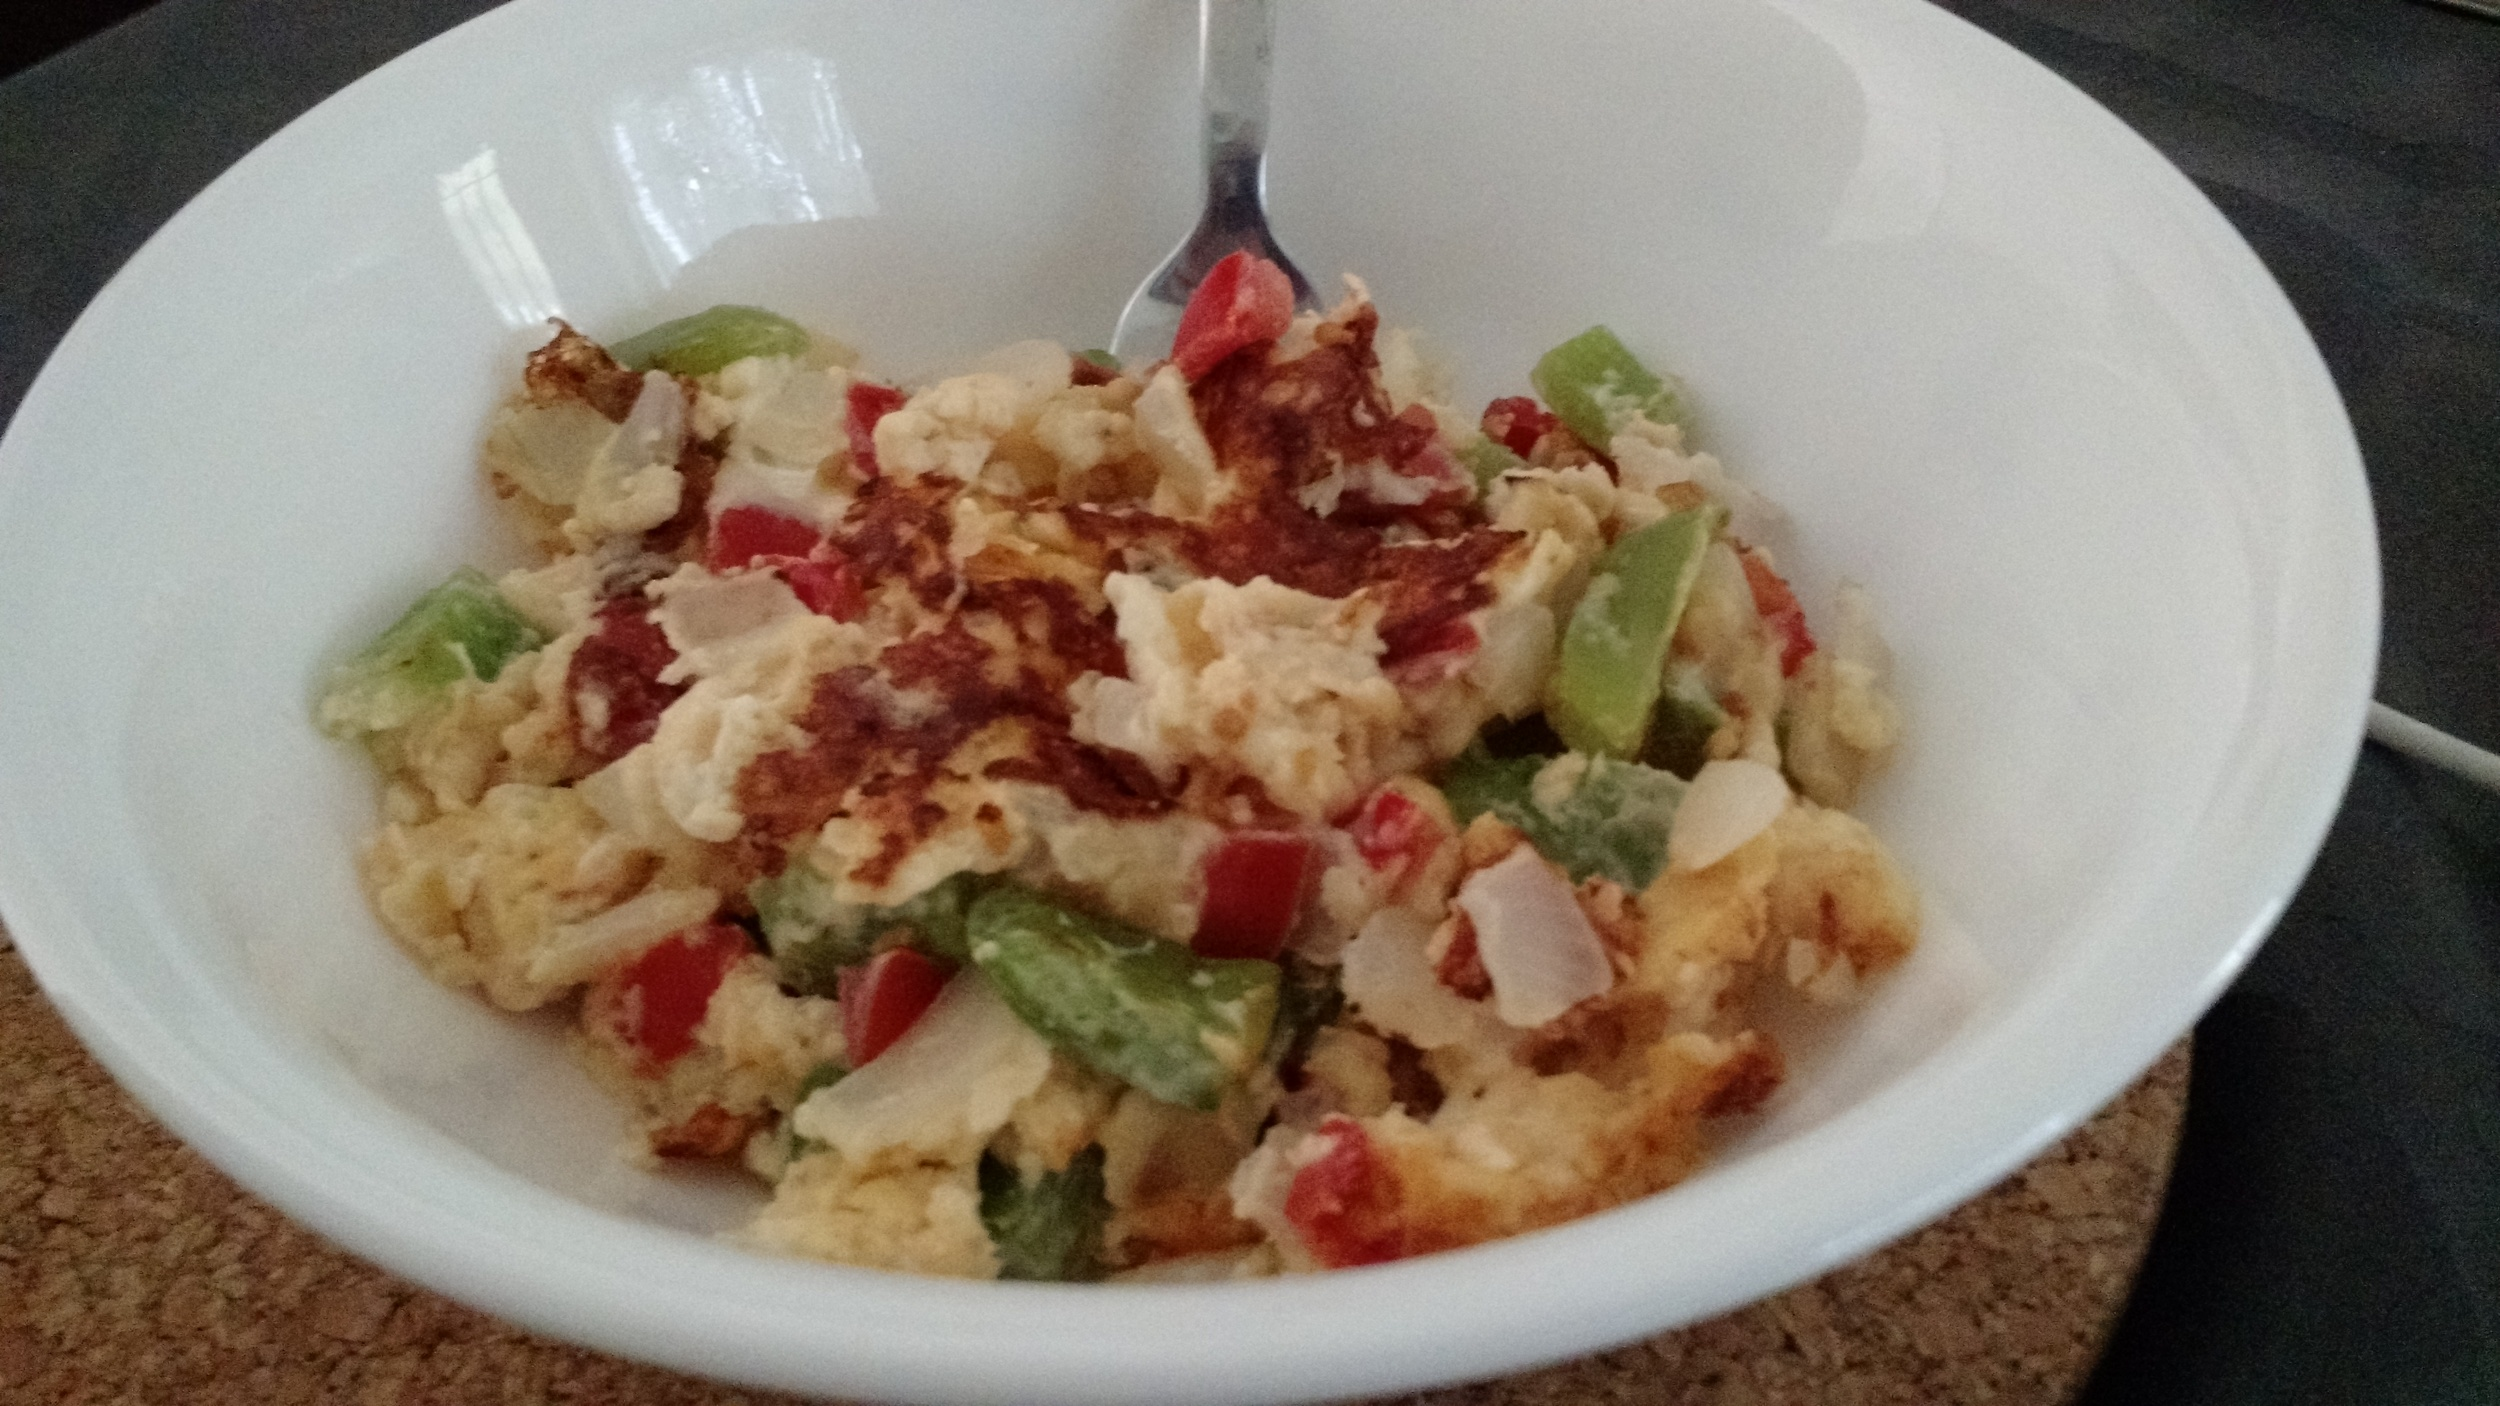 This is breakfast: one egg, bell peppers, onions, tomatoes, and cheese scrambled together.